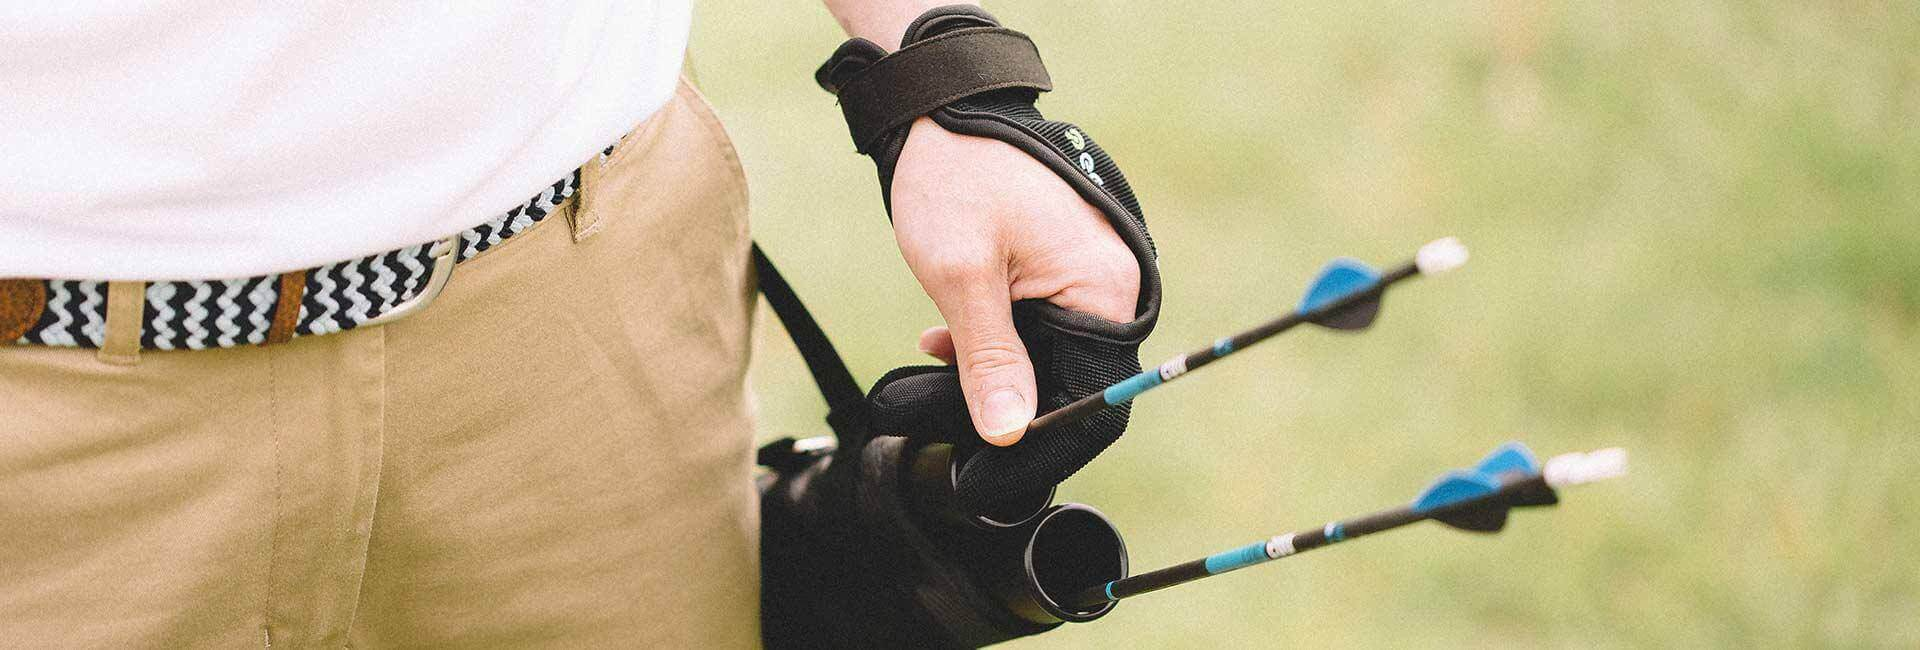 How to Choose the best Archery Equipment (3 Easy Steps)